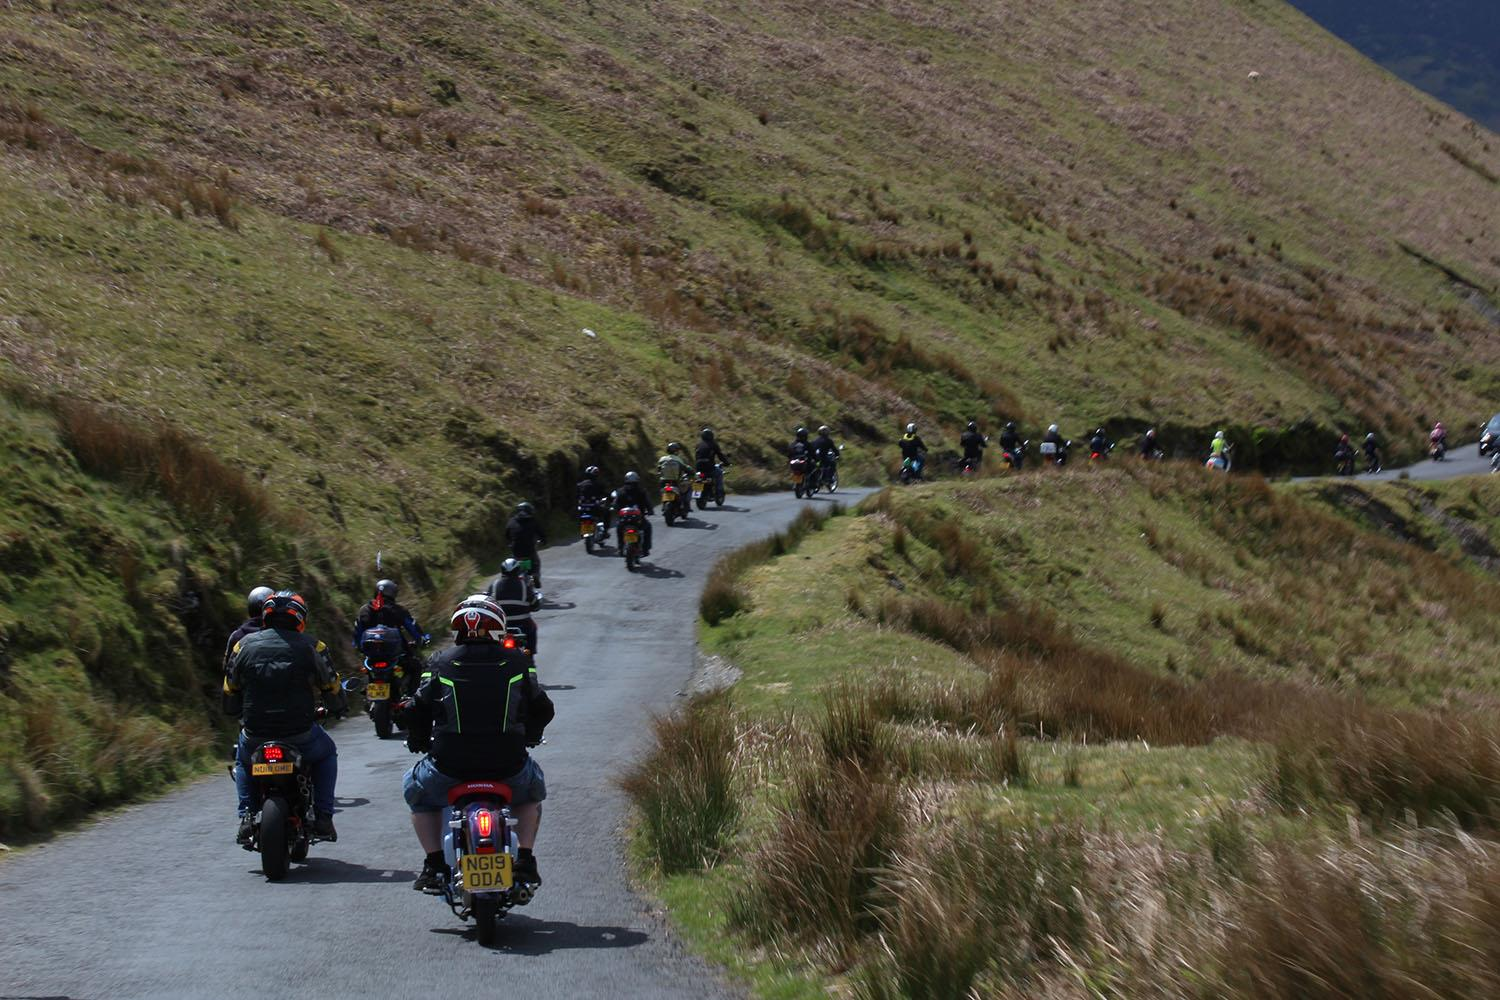 Northern Ningers group ride